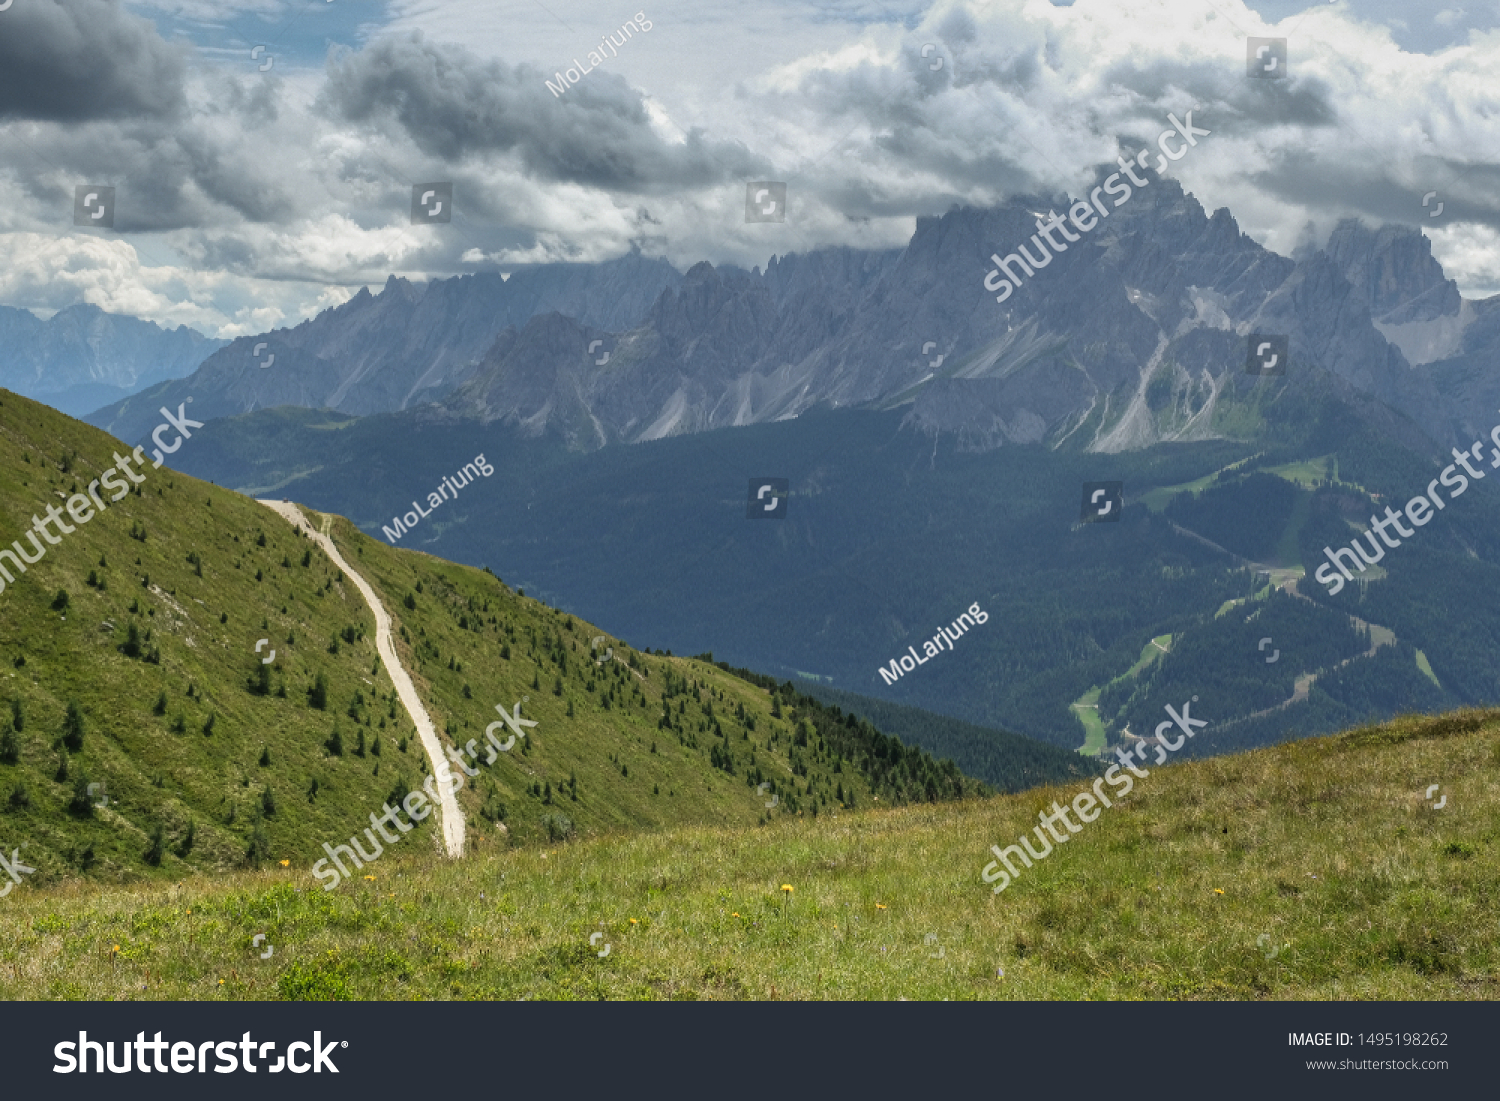 On ascent to Monte Elmo summit on Carnic Peace Trail along the Carnic Alps along the Italian & Austrian border with great views of the Sesto Dolomites massif in the south, South Tyrol, Italy/Austria